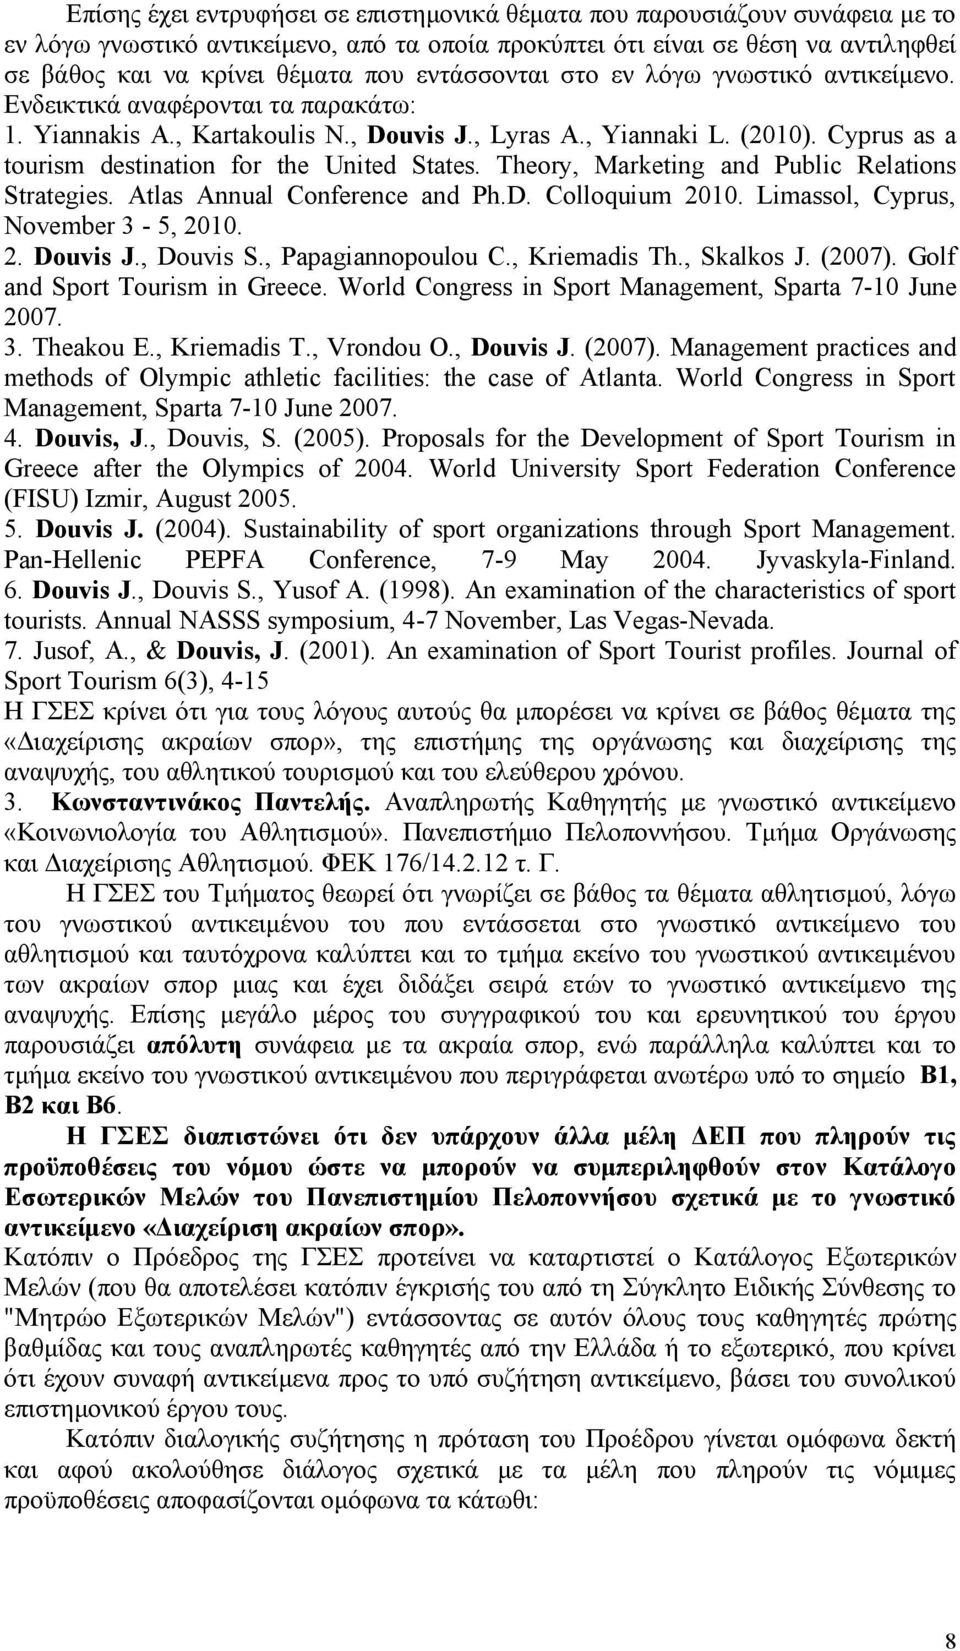 , Douvis S., Papagiannopoulou C., Kriemadis Th., Skalkos J. (2007). Golf and Sport Tourism in Greece. World Congress in Sport Management, Sparta 7-10 June 2007. 3. Theakou E., Kriemadis T., Vrondou O.